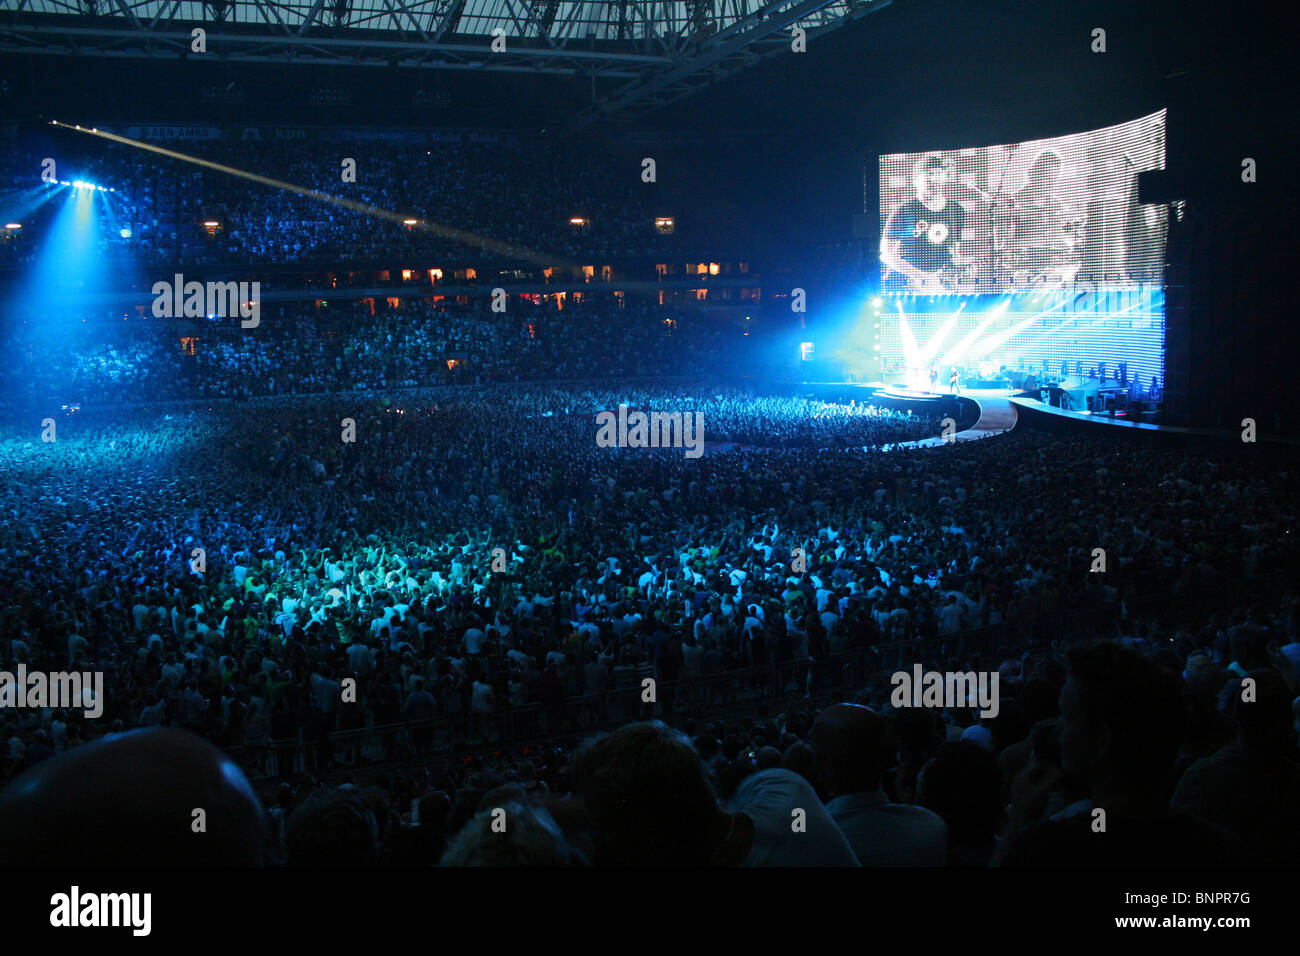 u2 concert fans stock photos u2 concert fans stock images alamy. Black Bedroom Furniture Sets. Home Design Ideas